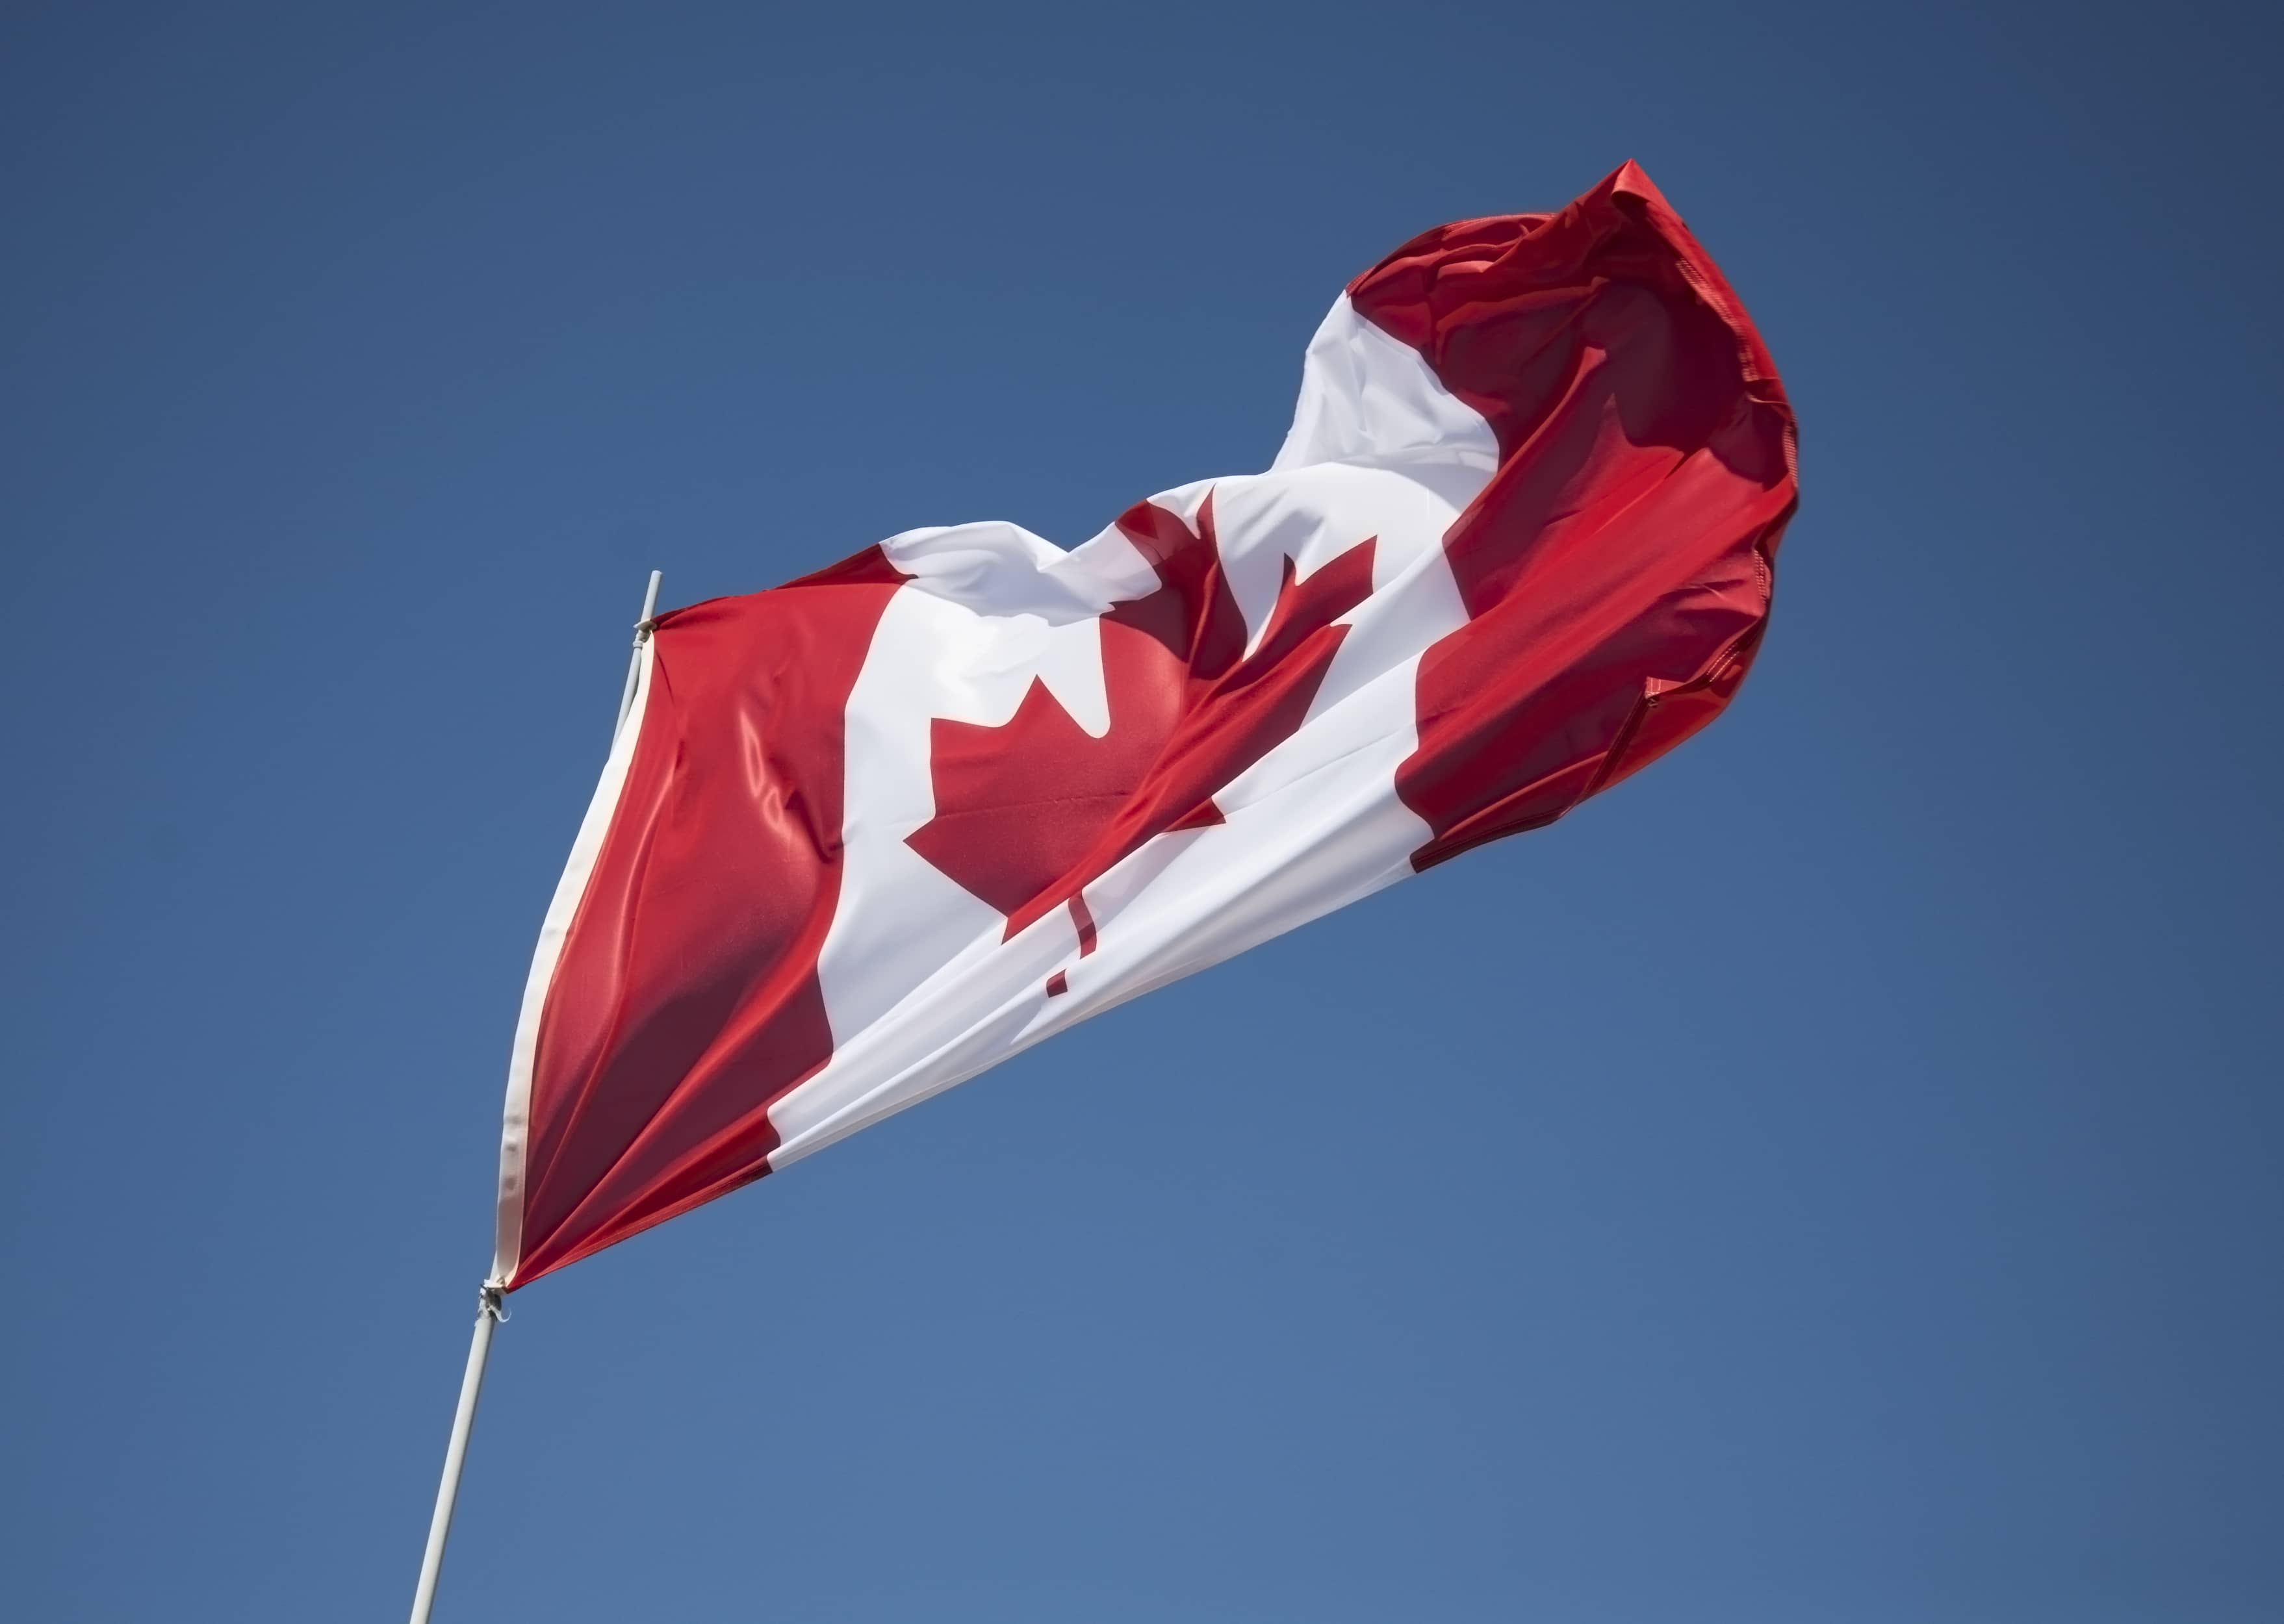 A Canadian flag fluttering against a clear blue sky.